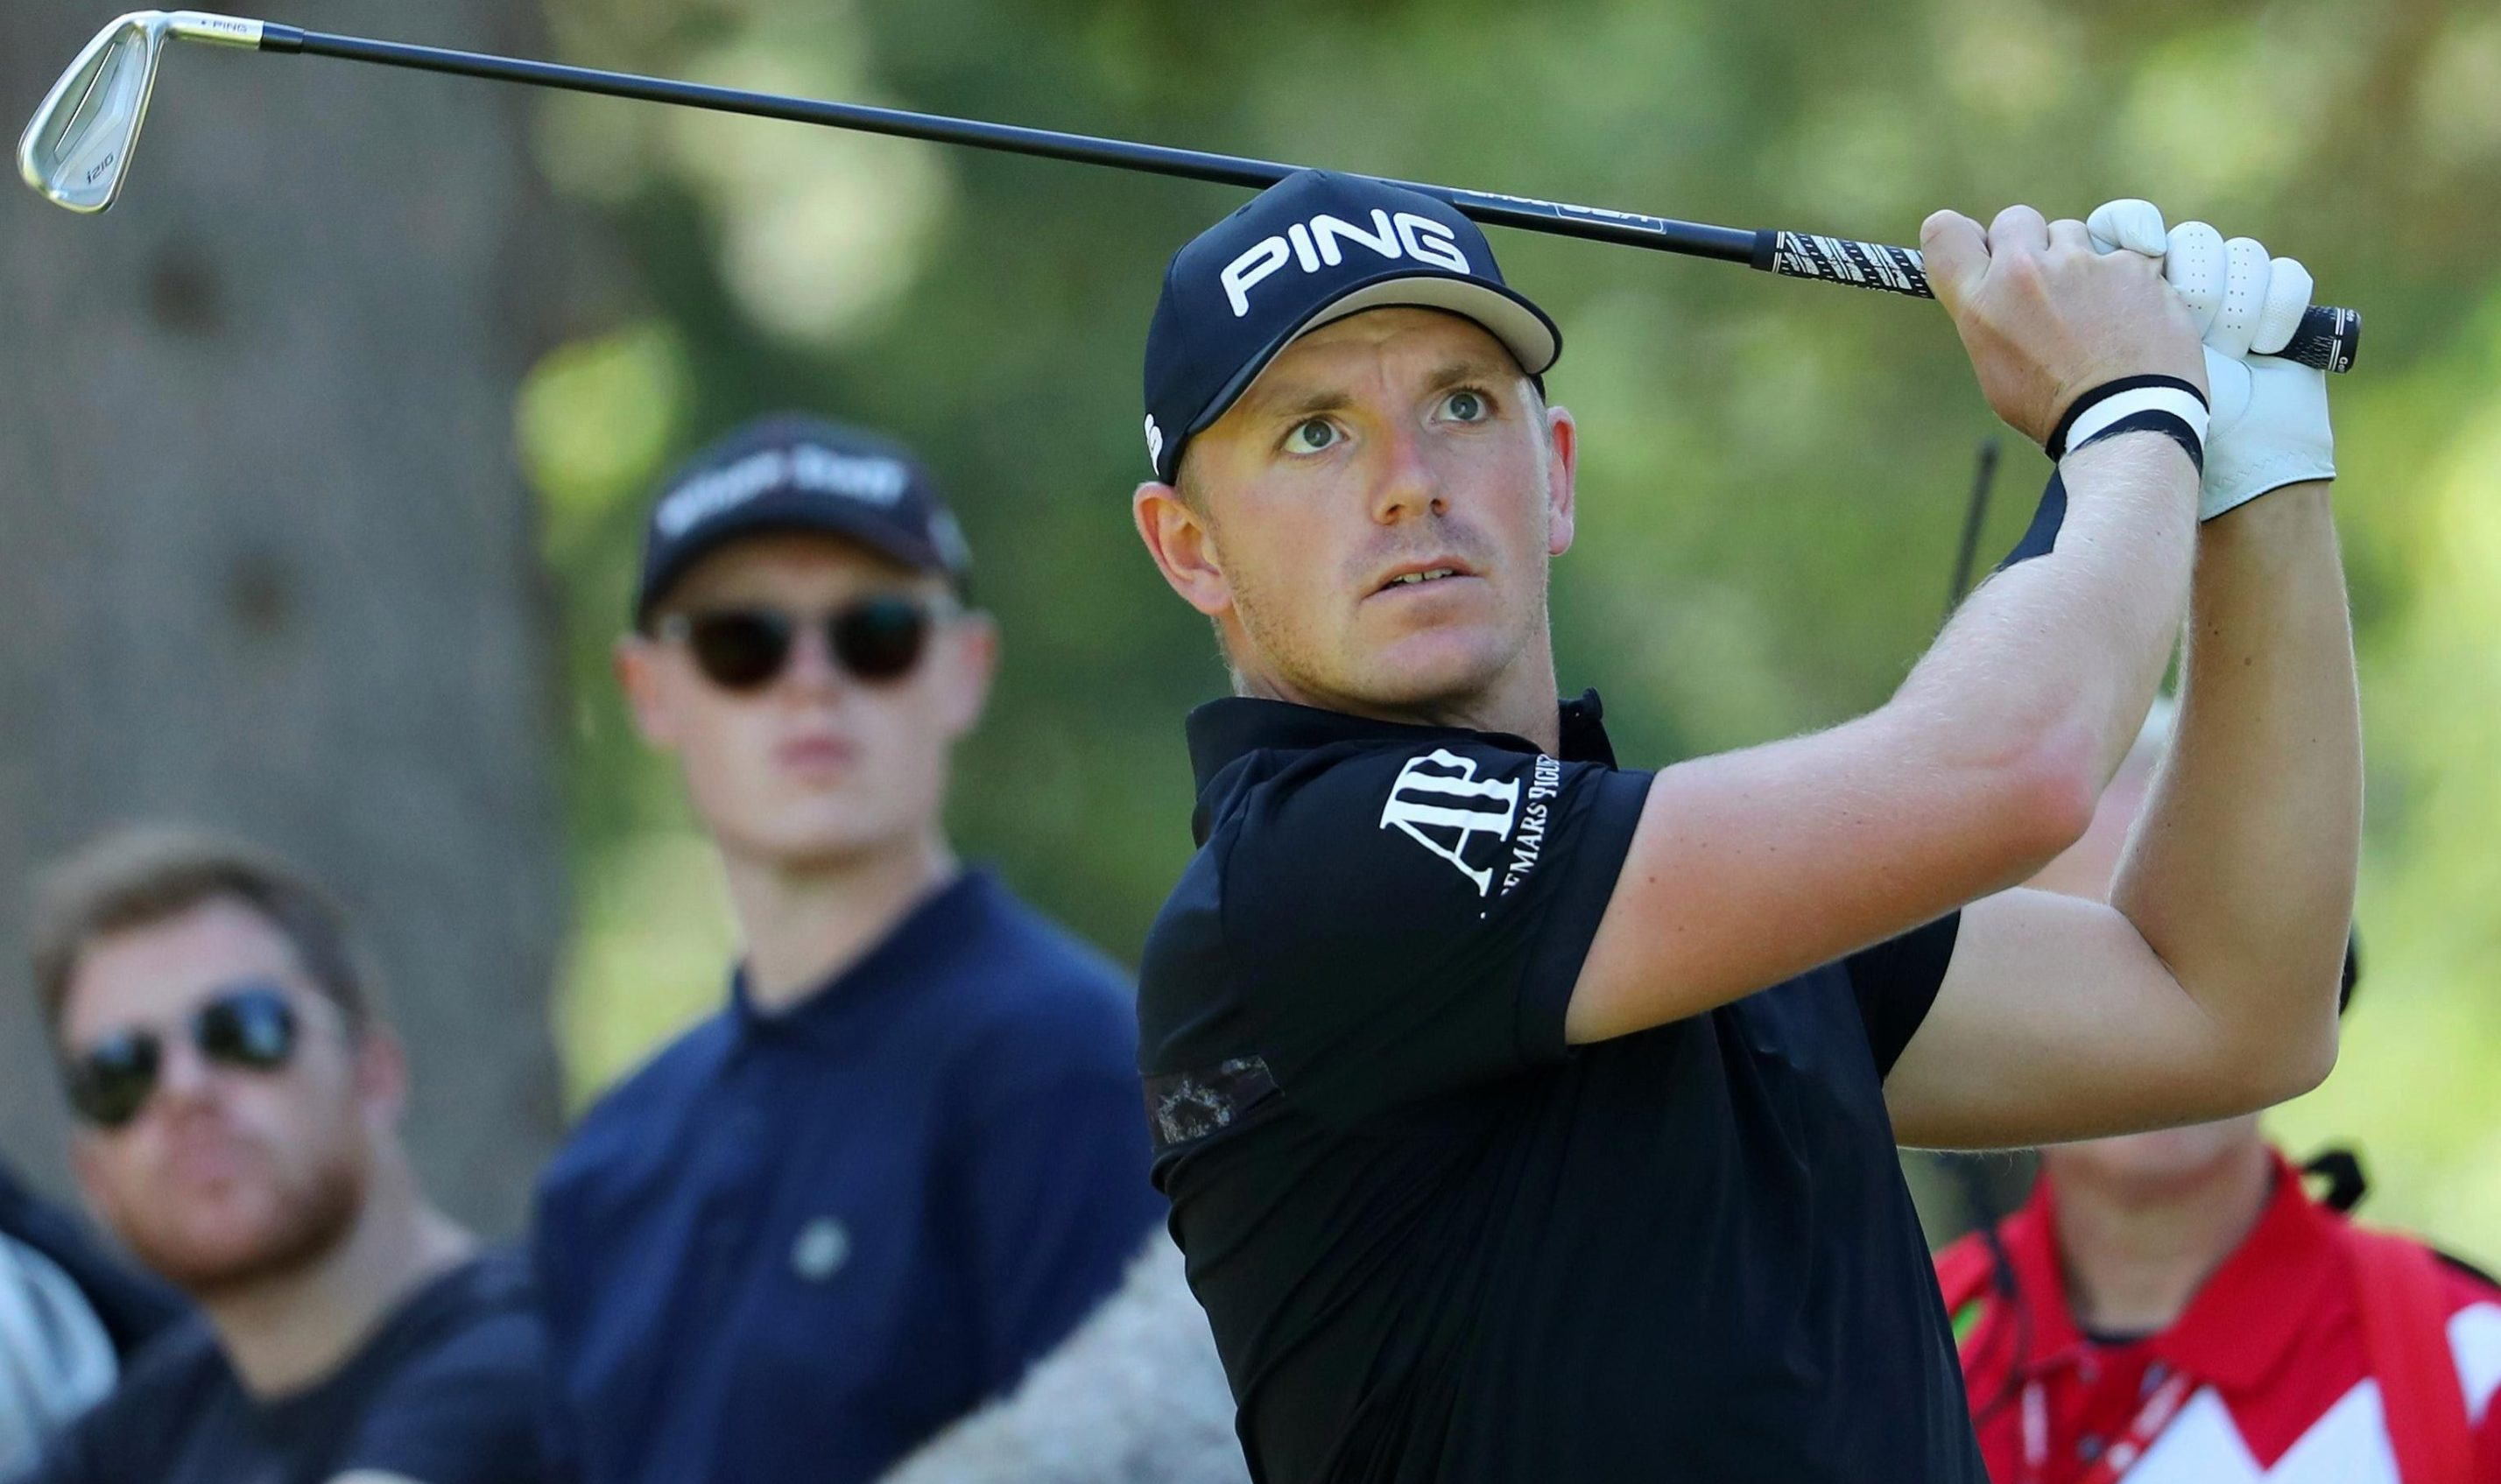 English ace Matt Wallace has fired his way into contention for a Ryder Cup place